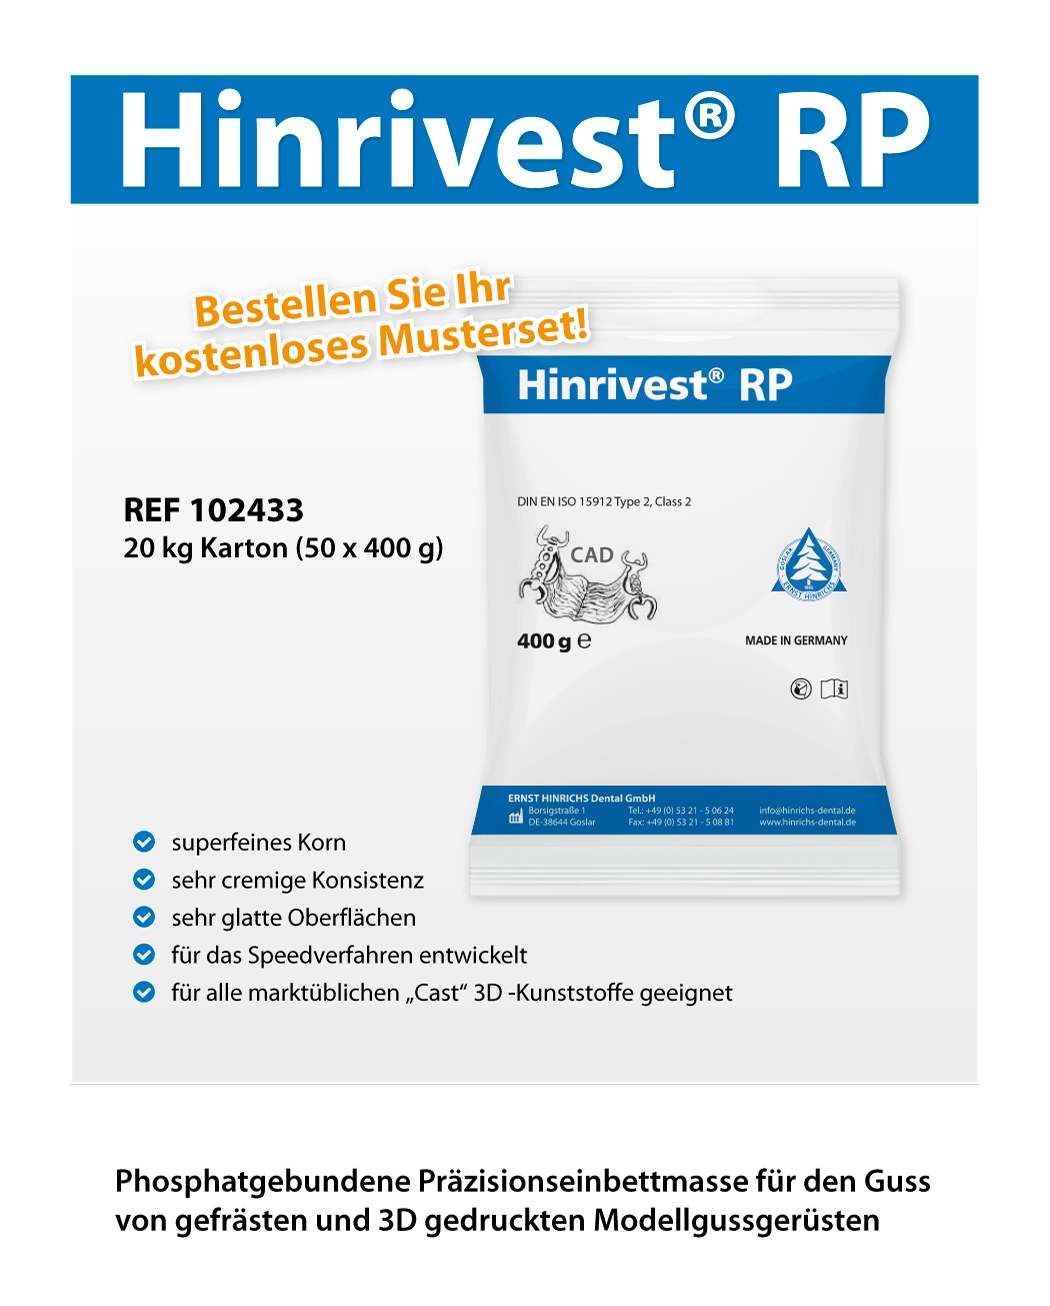 hinrivest rp A5Musterset